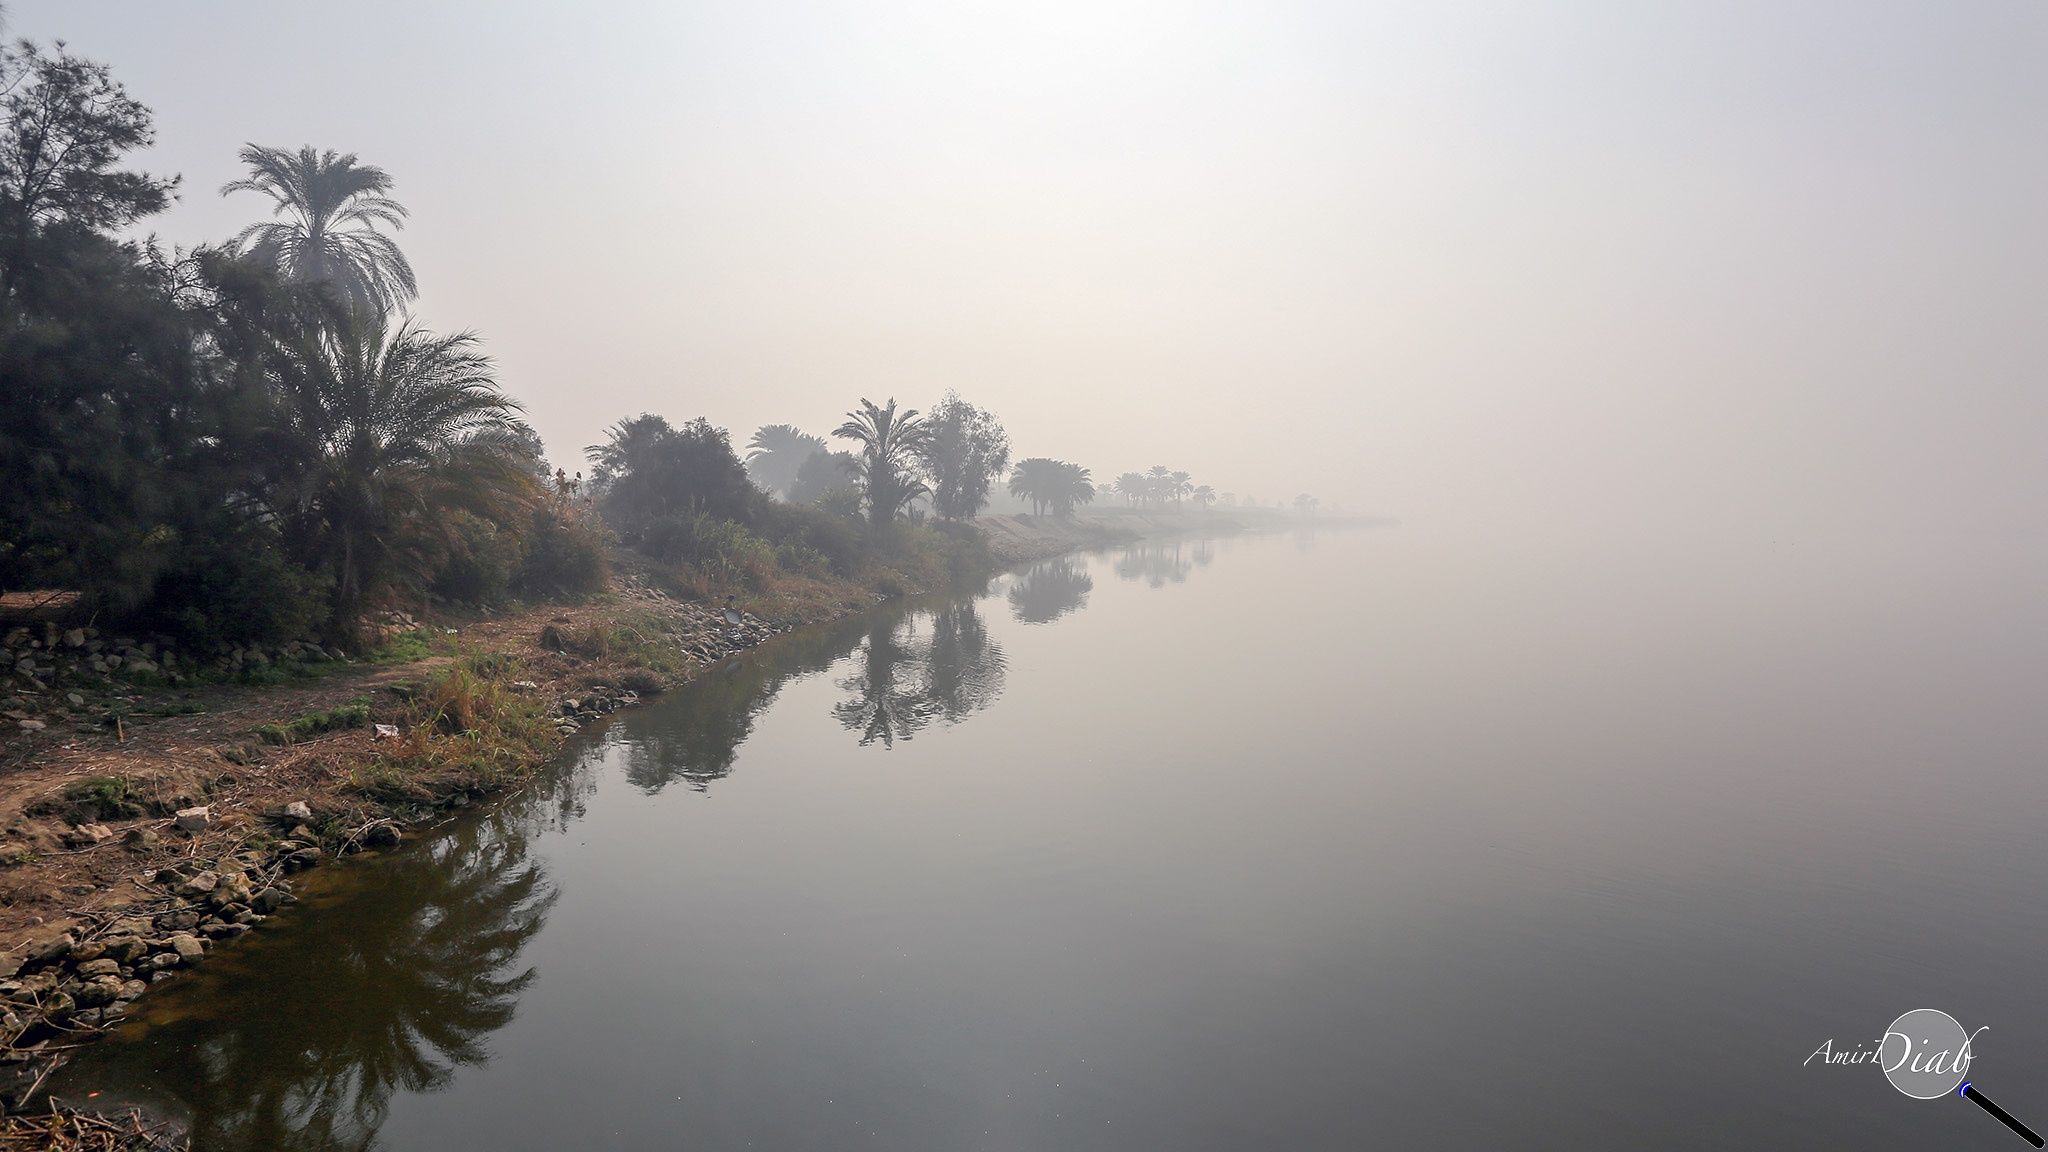 The Great Nile River by Amir Diab